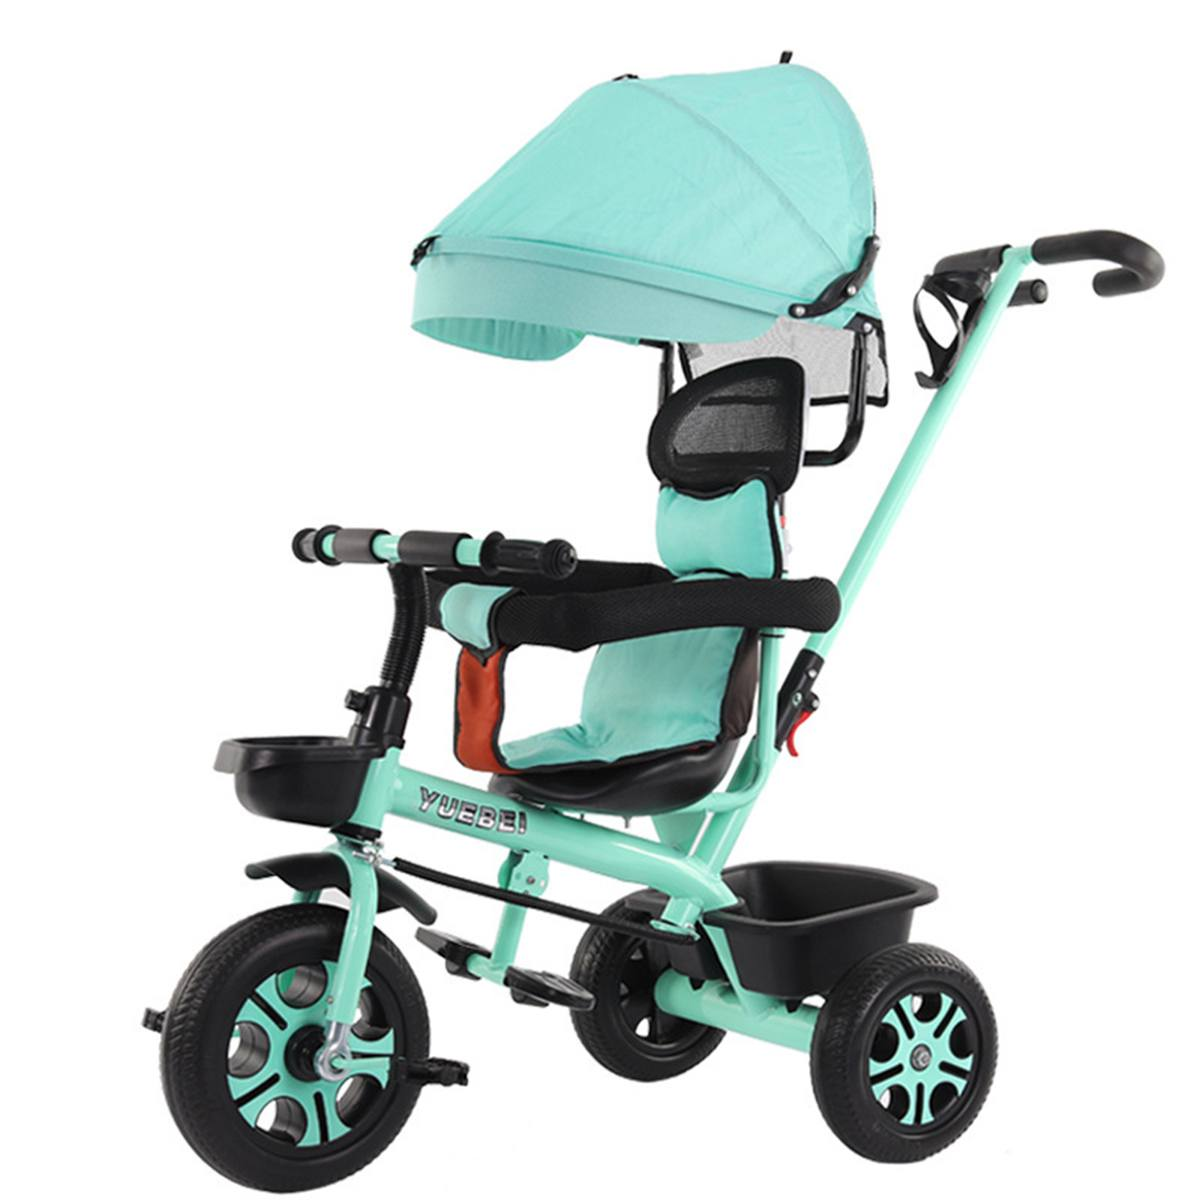 4 In 1 Infant Tricycle Folding Rotating Seat Baby Stroller 3 Wheel Bicycle Kids Bike Three Wheel Stroller Toddler Baby Trolley